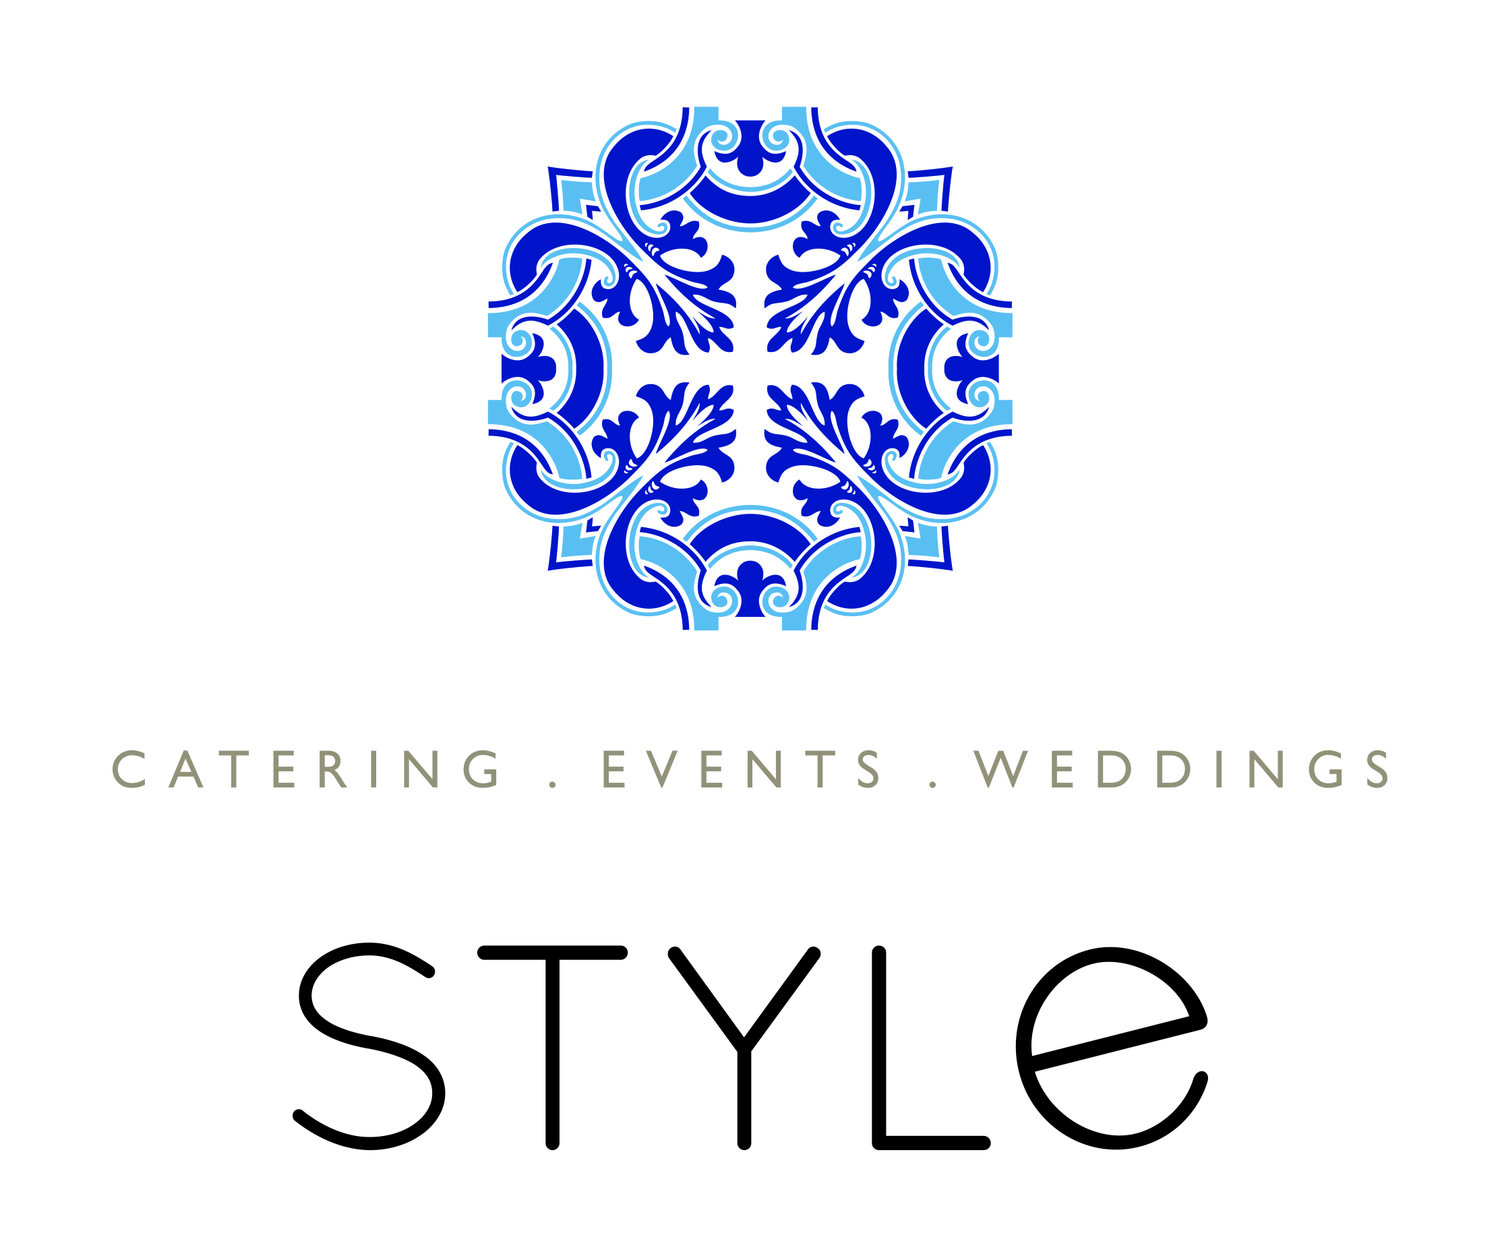 STYLE Catering I Events I Weddings